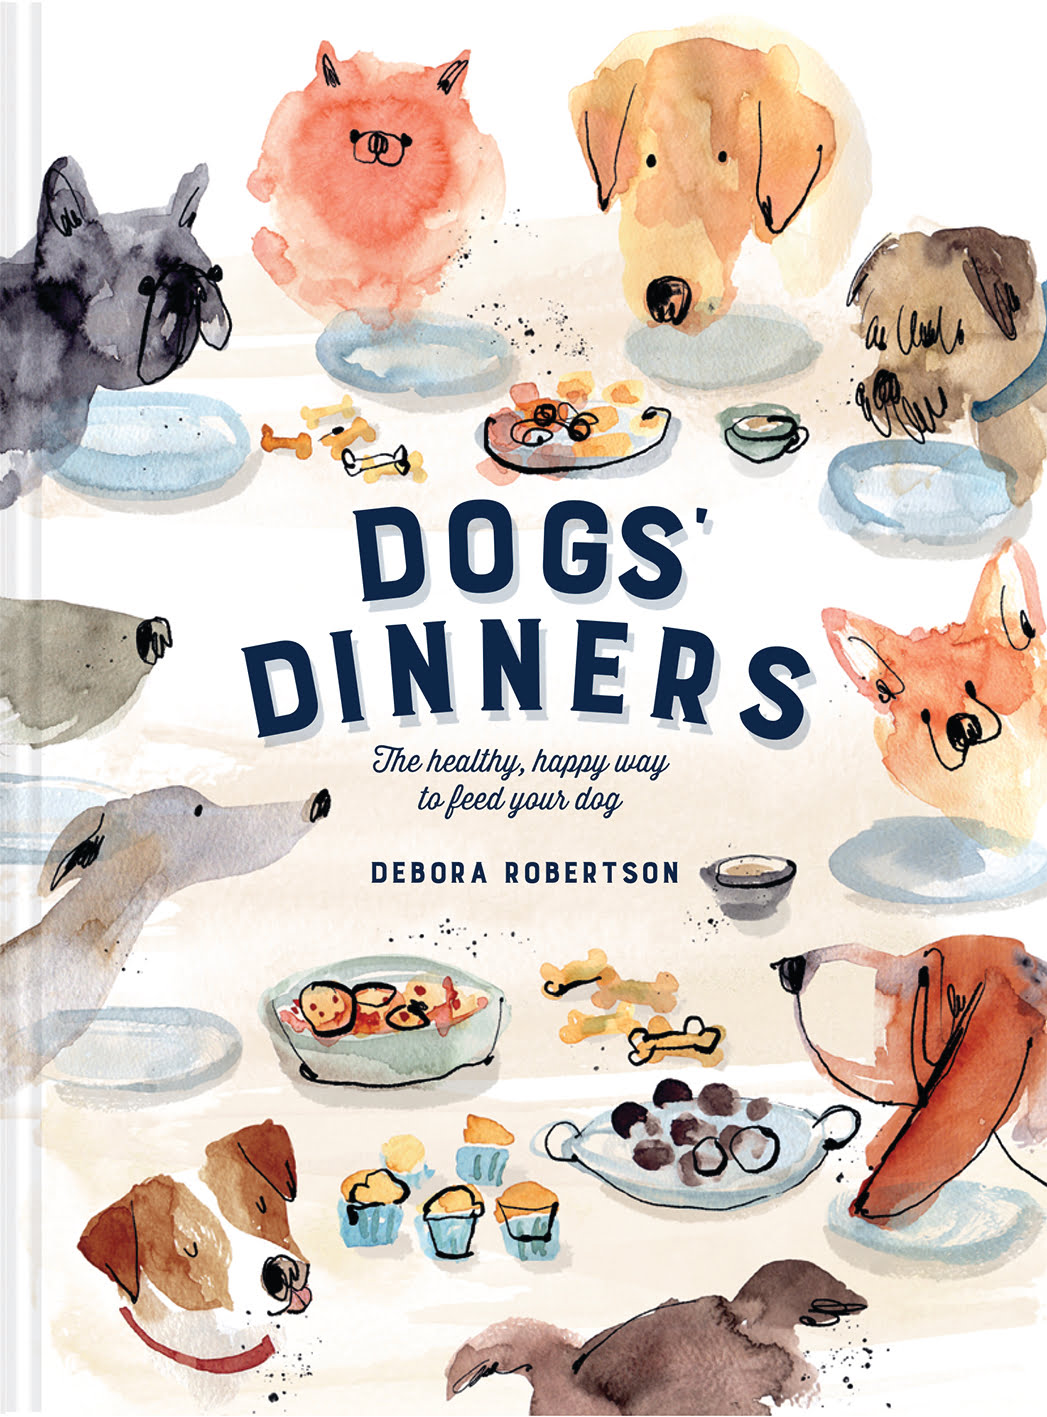 Dogs's Dinners is beautifully illustrated by Cinzia Zenocchini with over 50 recipes for dogs!